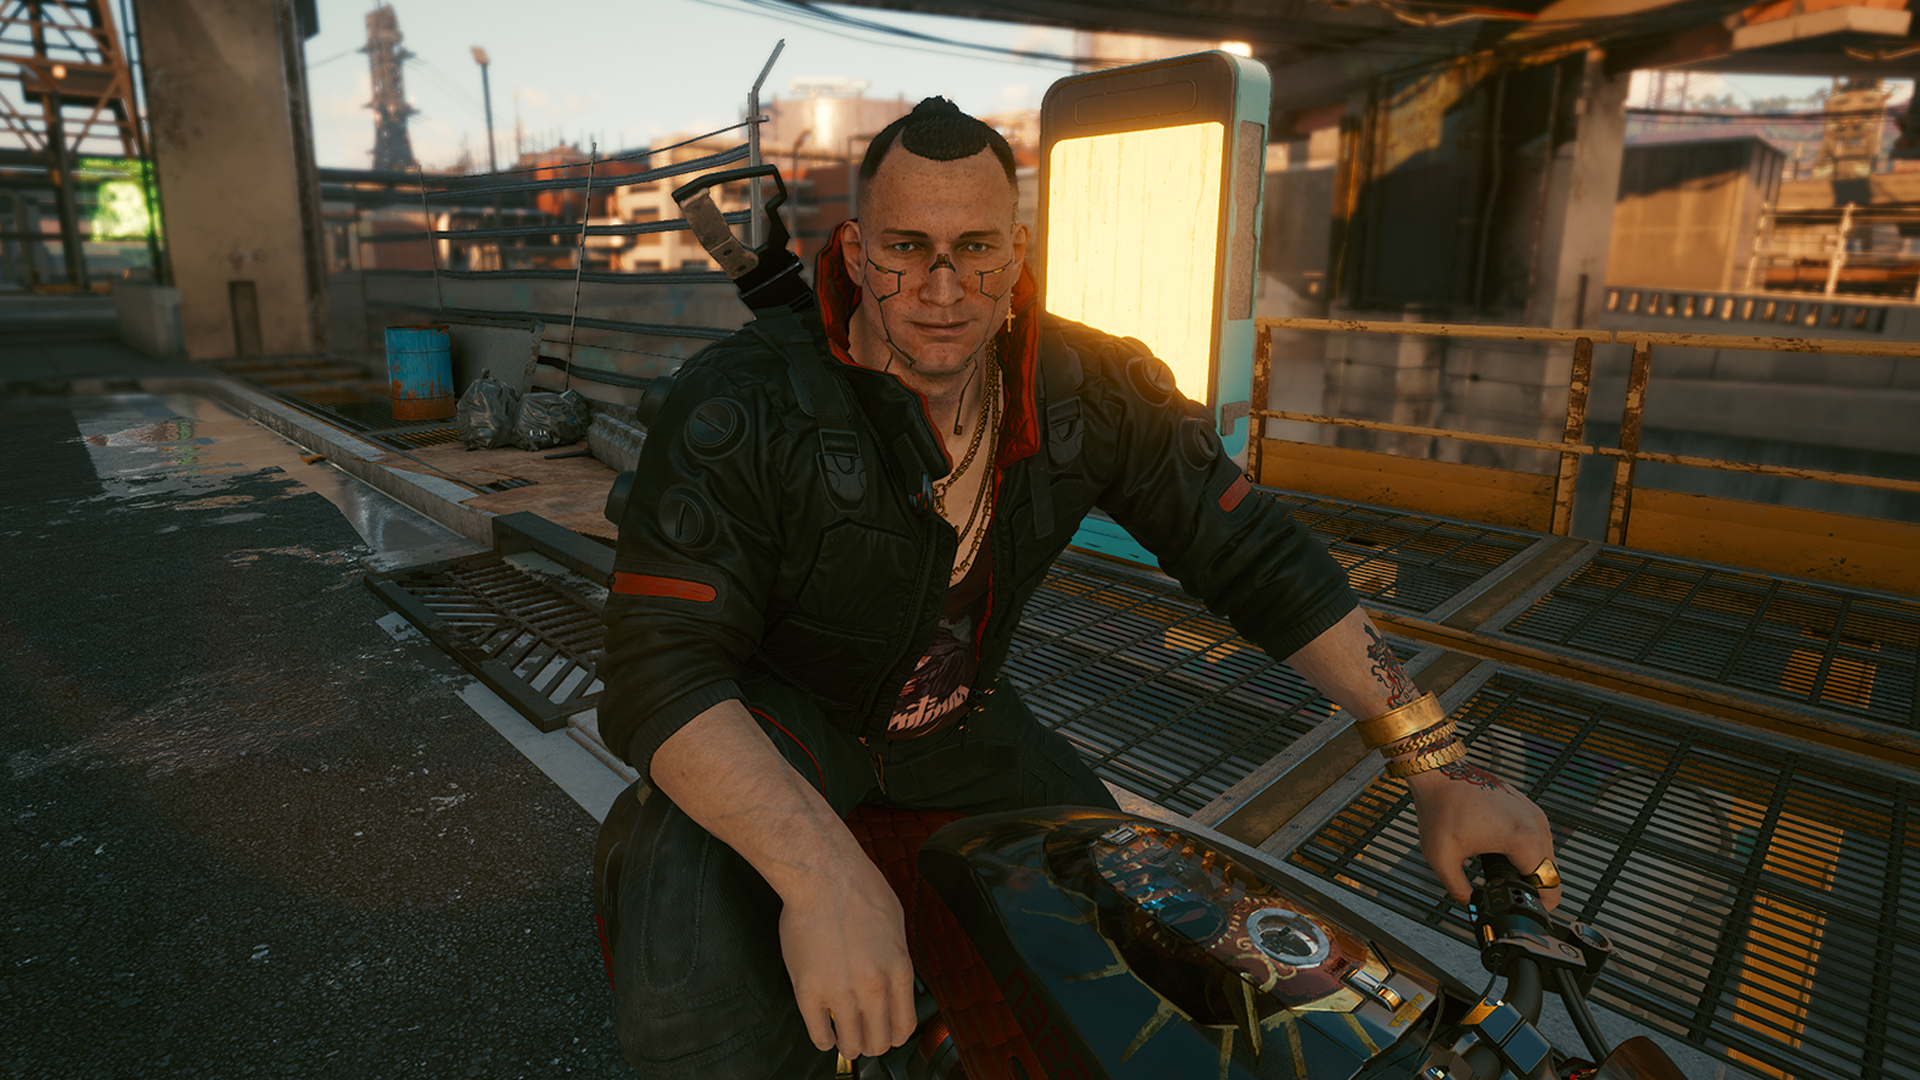 Cyberpunk 2077: Sending Jackie's remains to family or clinic?